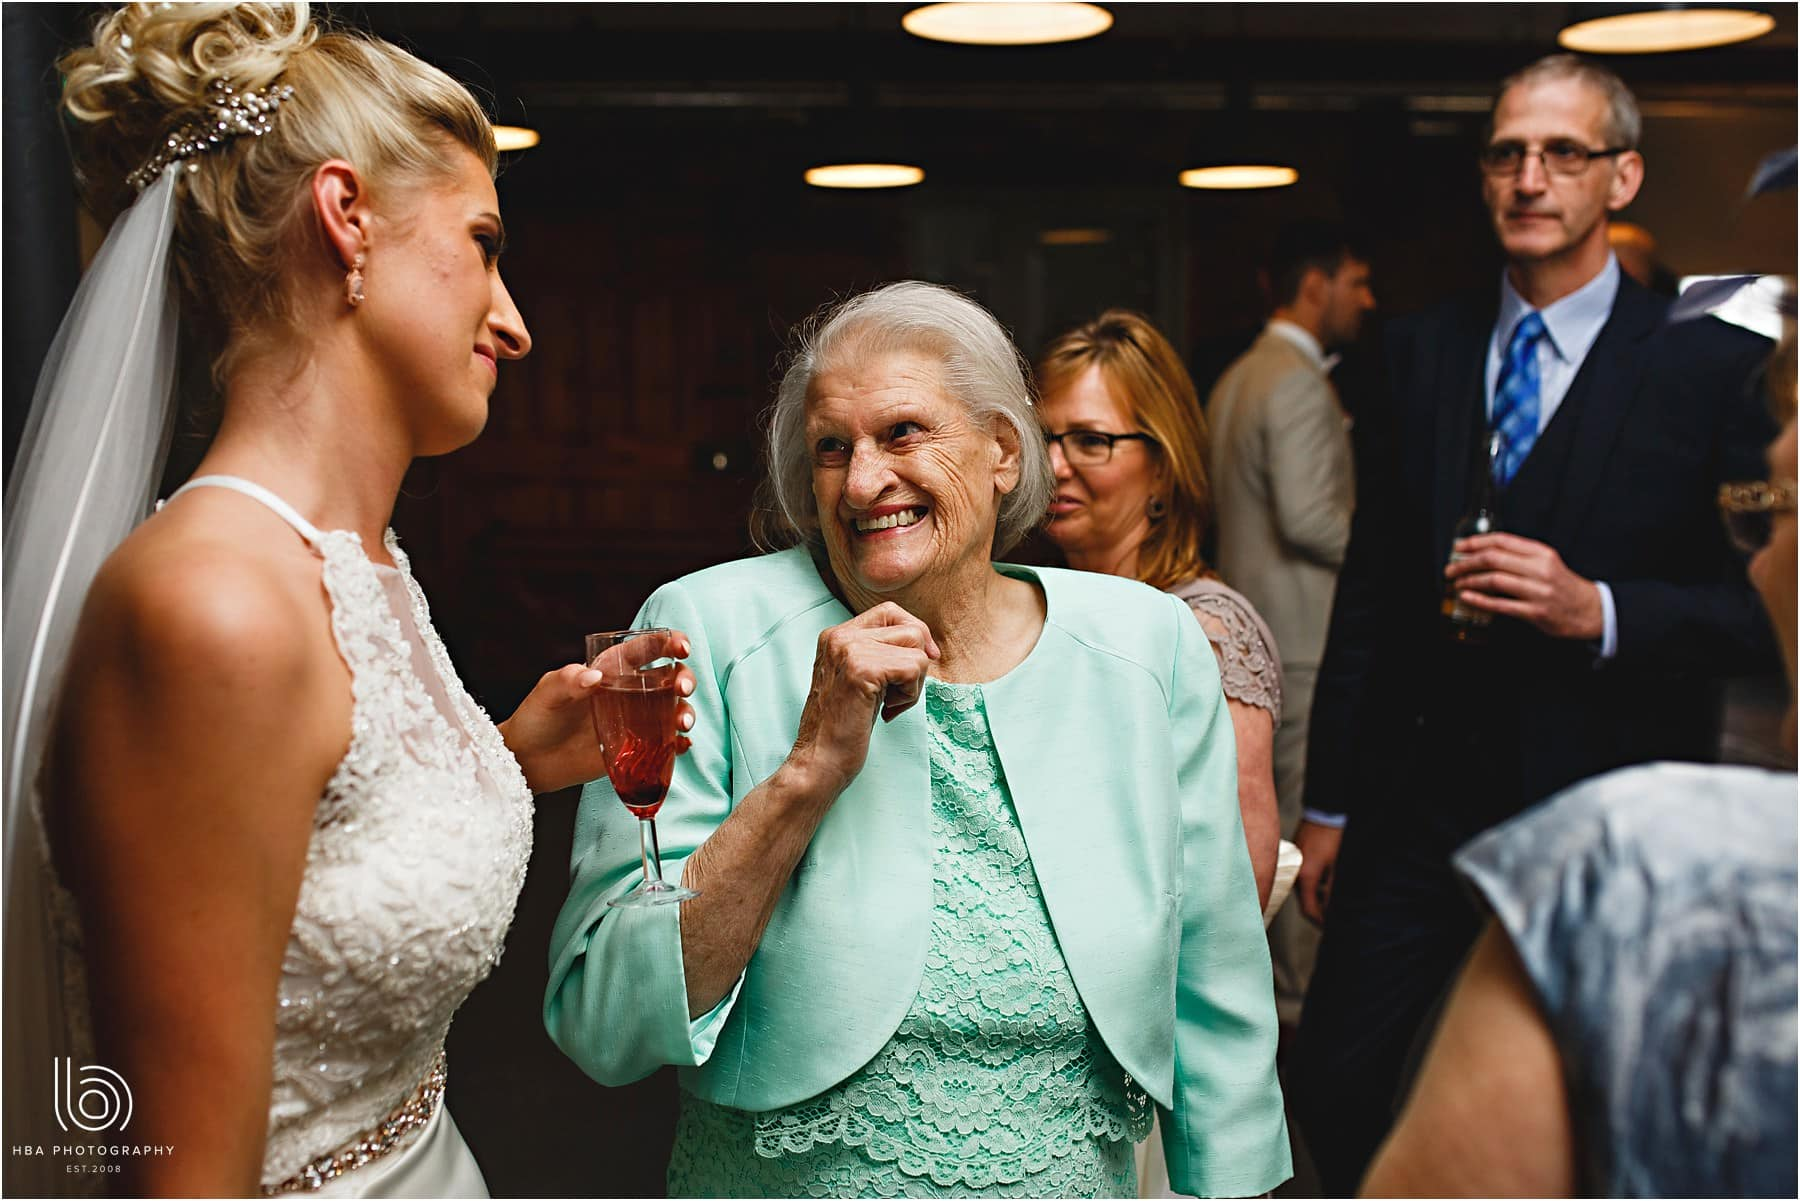 the bride and her grandmother laughing at her wedding